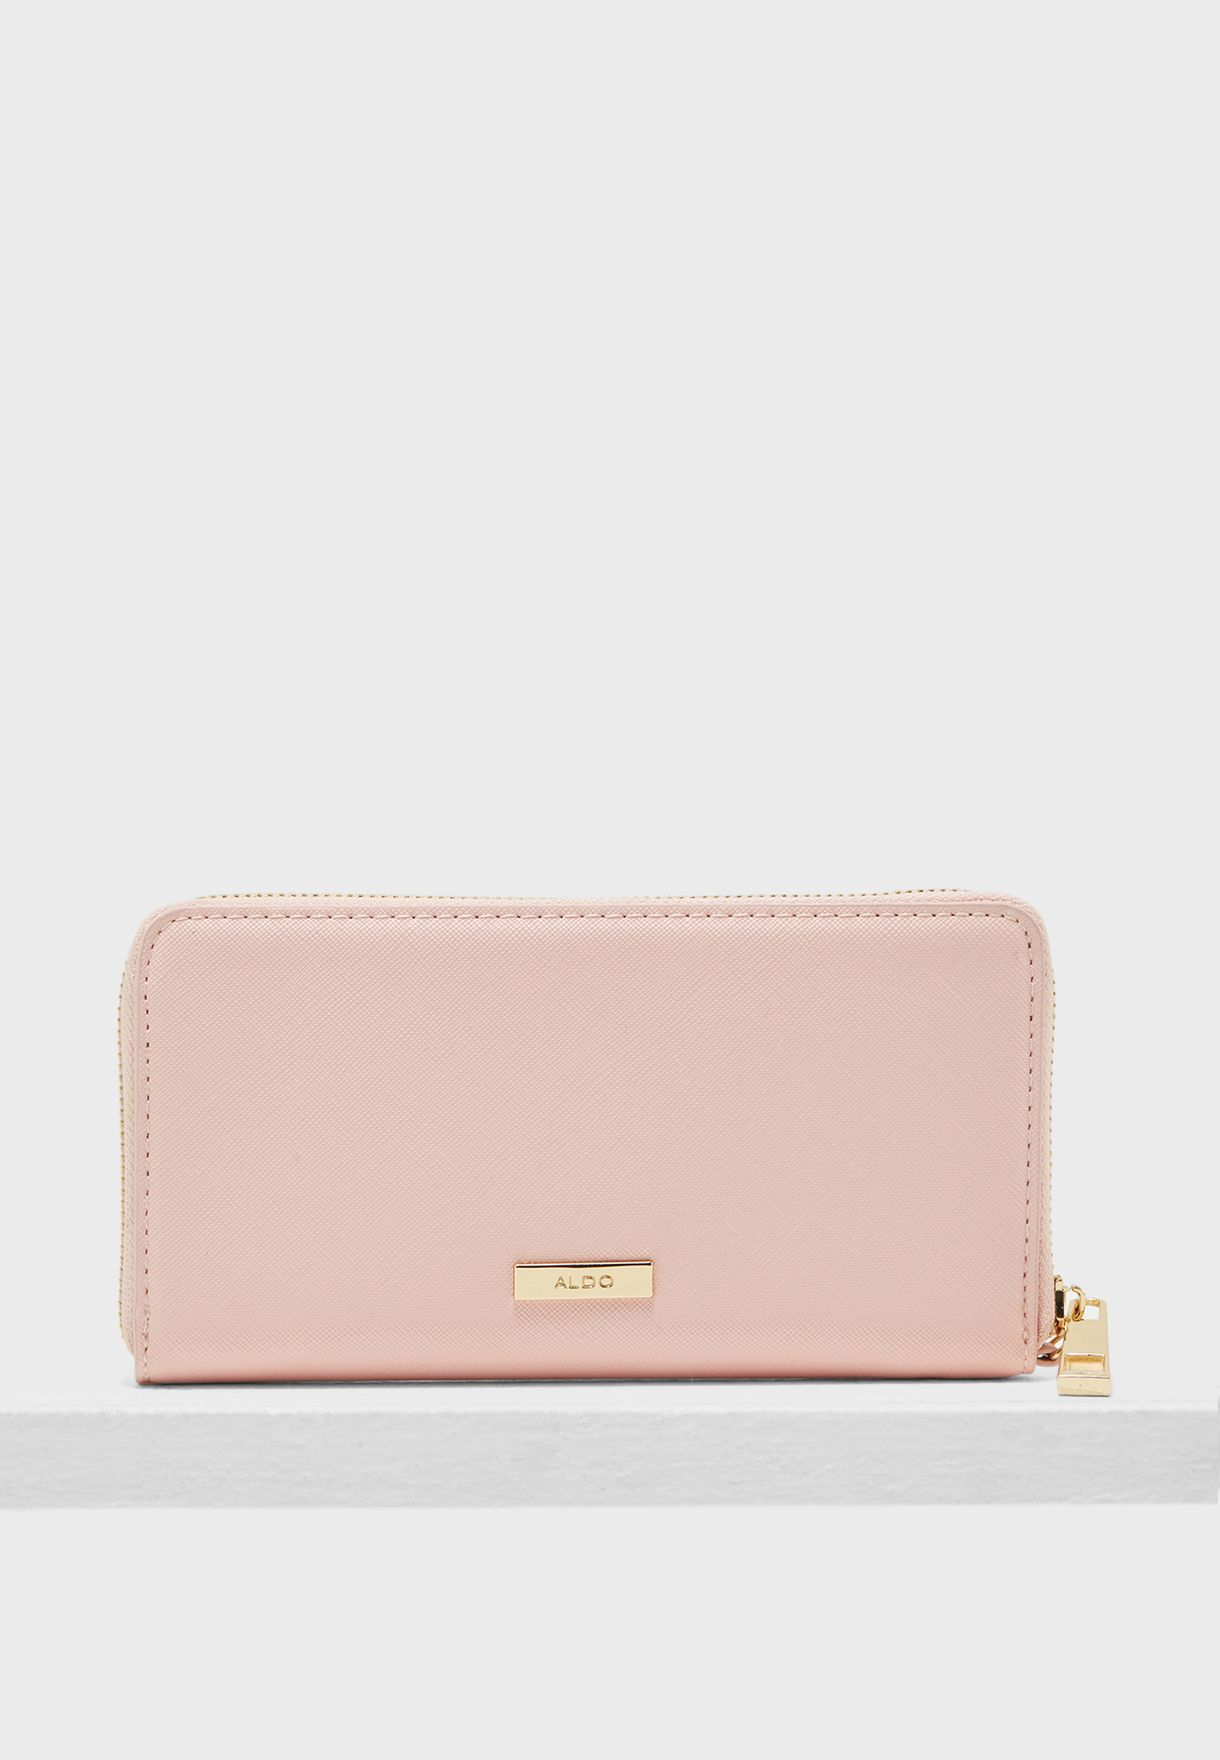 4f682960c231 Shop Aldo pink Zip Around Purse PAVOT55 for Women in UAE - AL729AC88ZVV